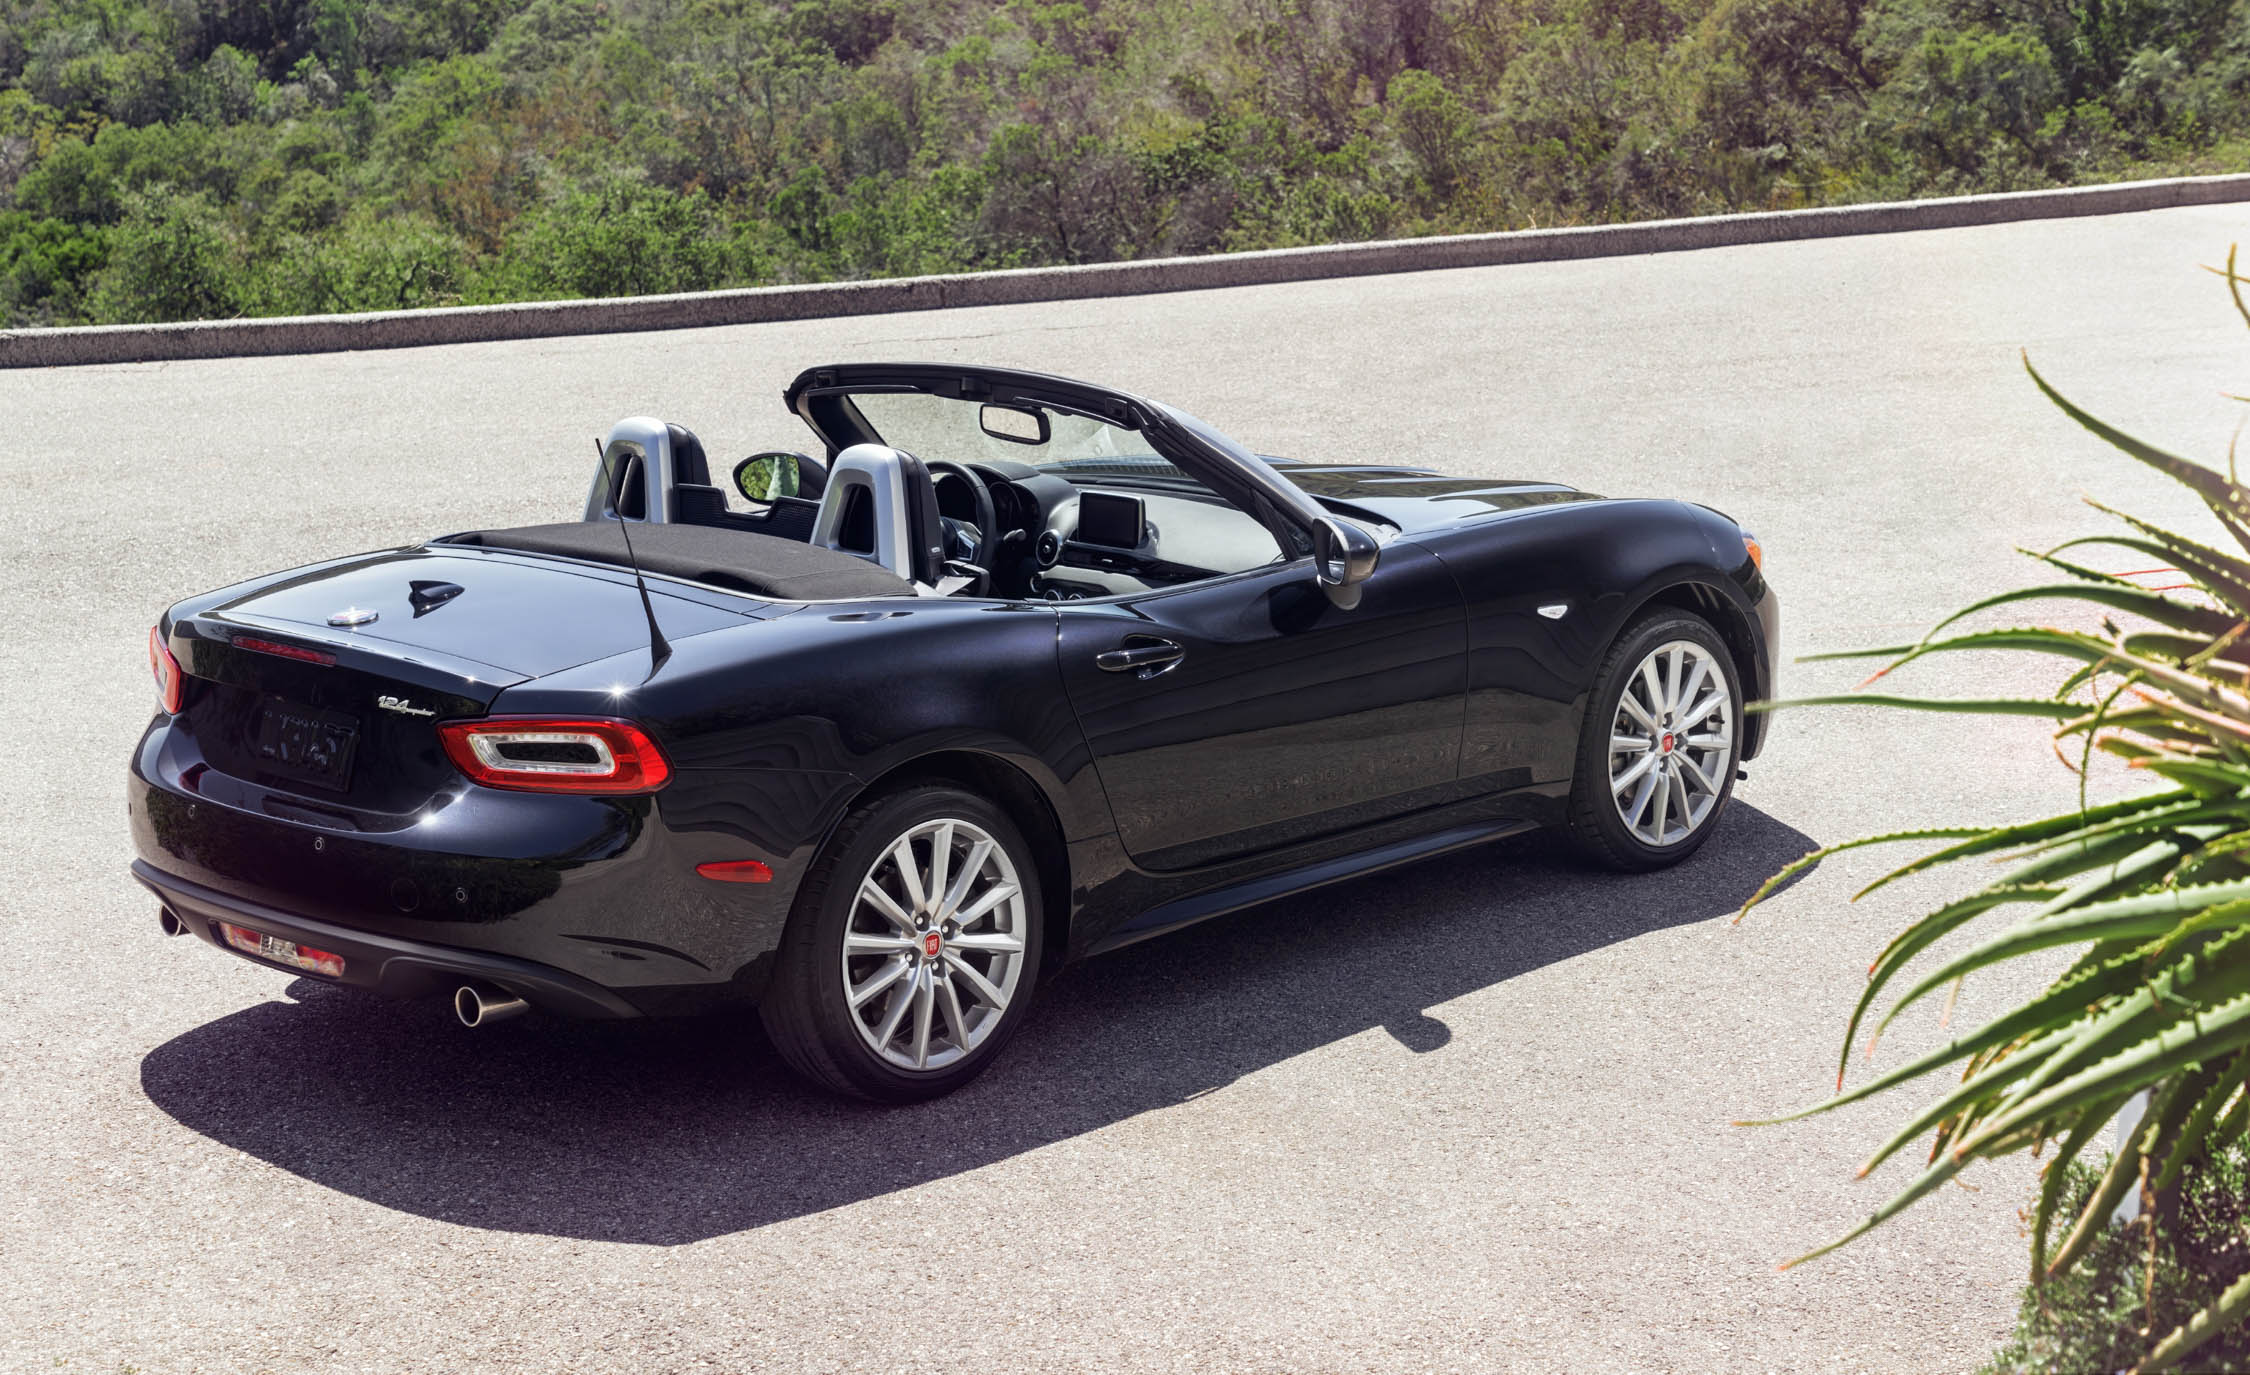 2017 Fiat 124 Spider Black Exterior Preview (Photo 2 of 23)